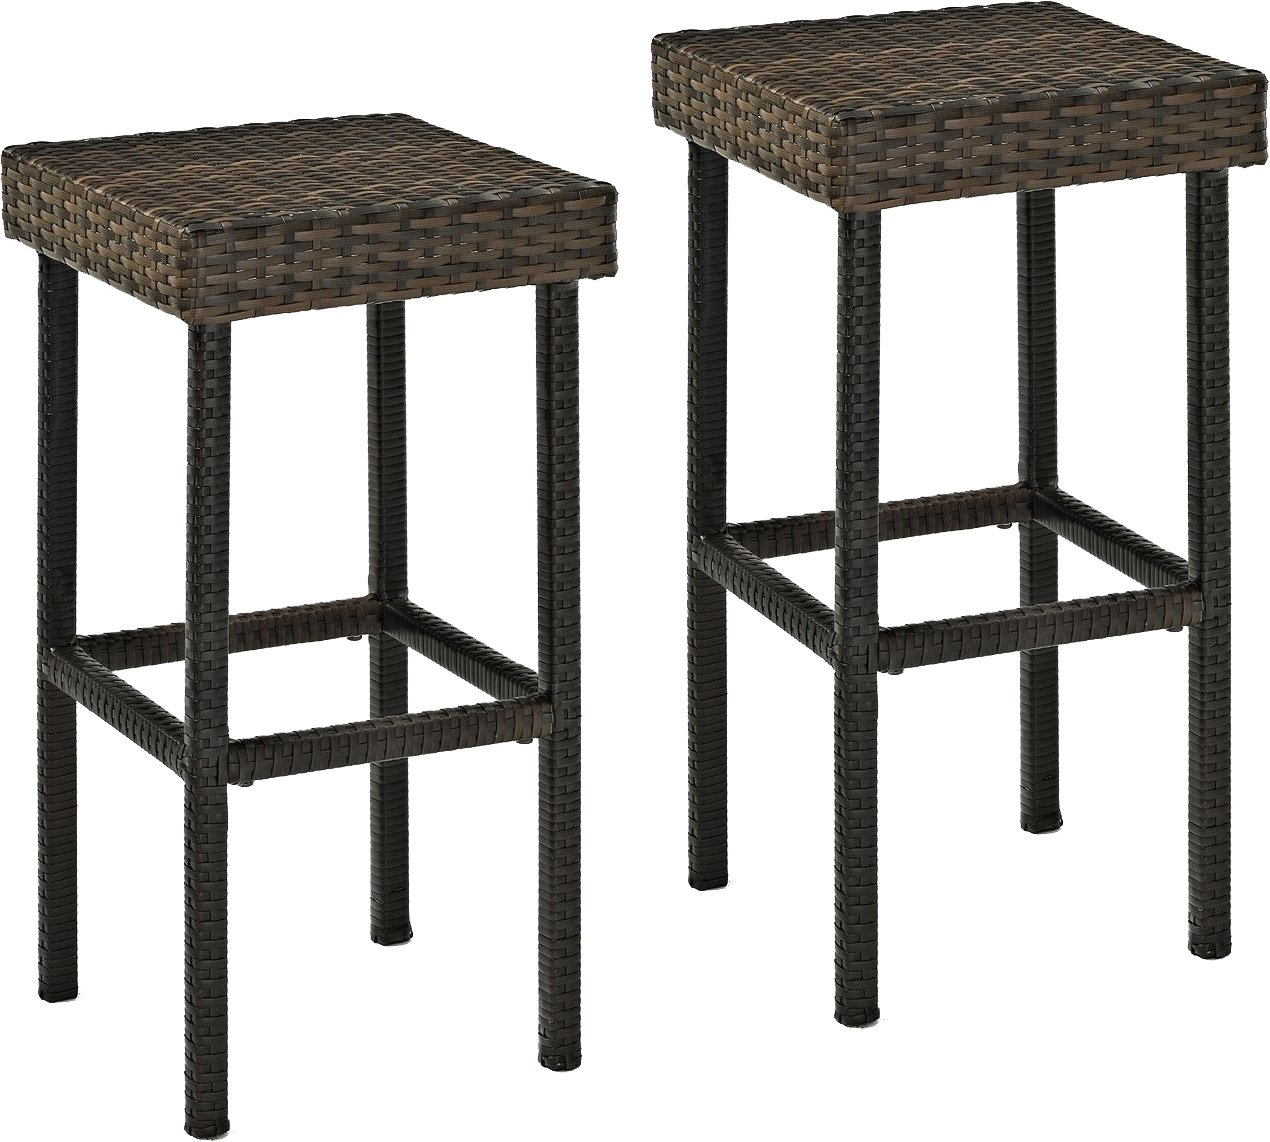 Crosley Furniture Palm Harbor Outdoor Wicker 29-inch Bar Stools – Brown Set of 2